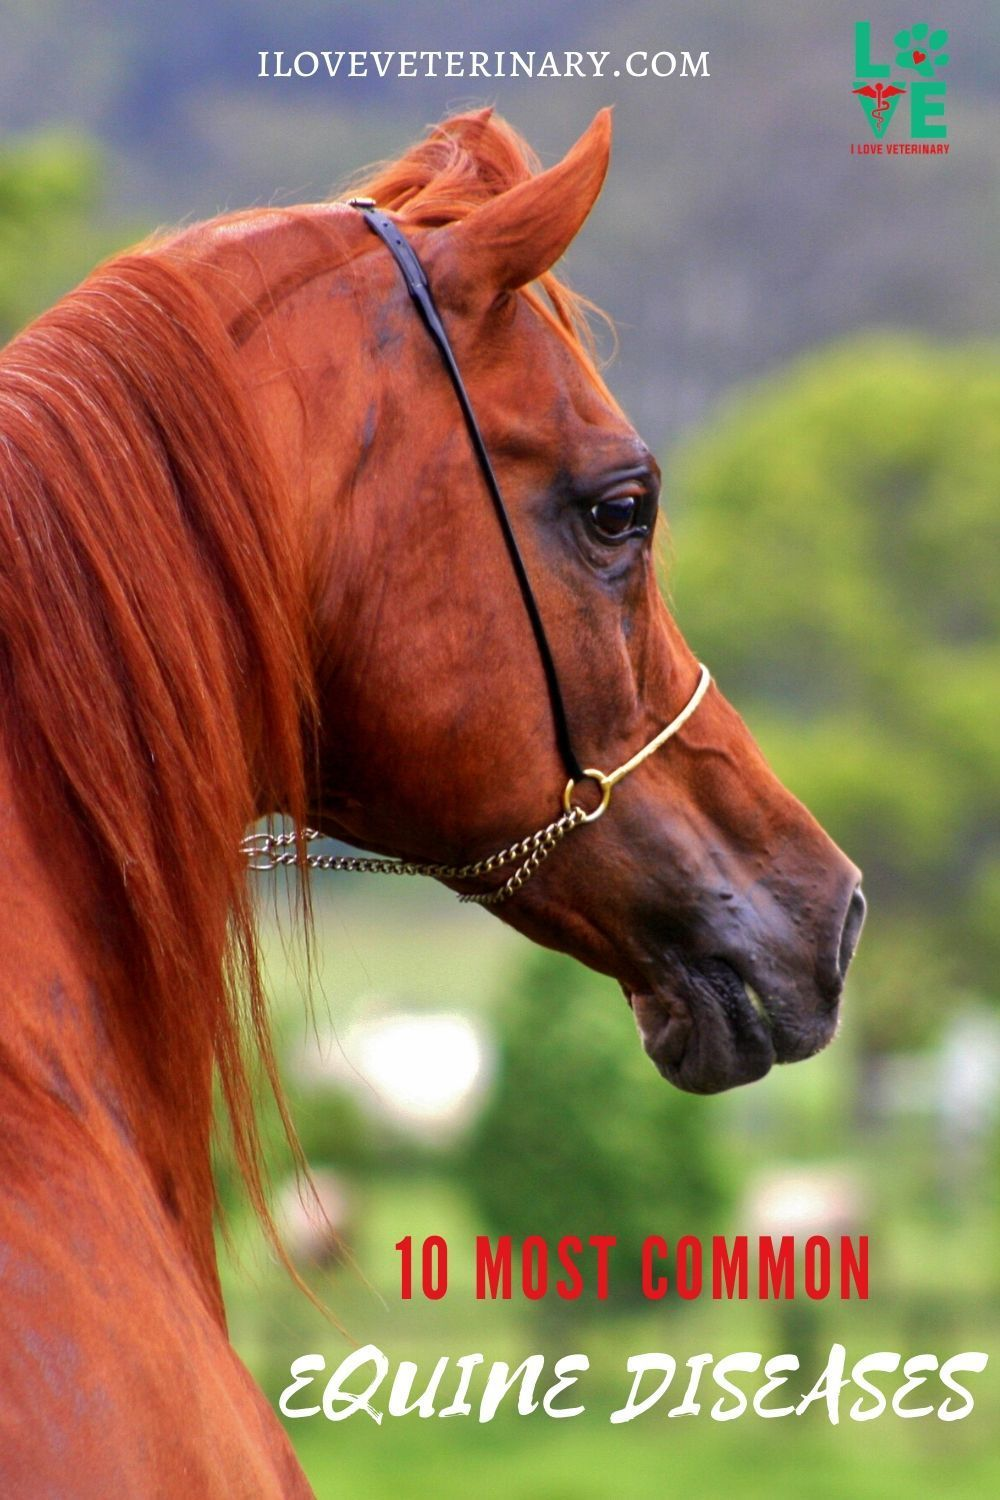 10 Most Common Equine Diseases In 2020 Equines Large Animal Vet Equine Vet Tech